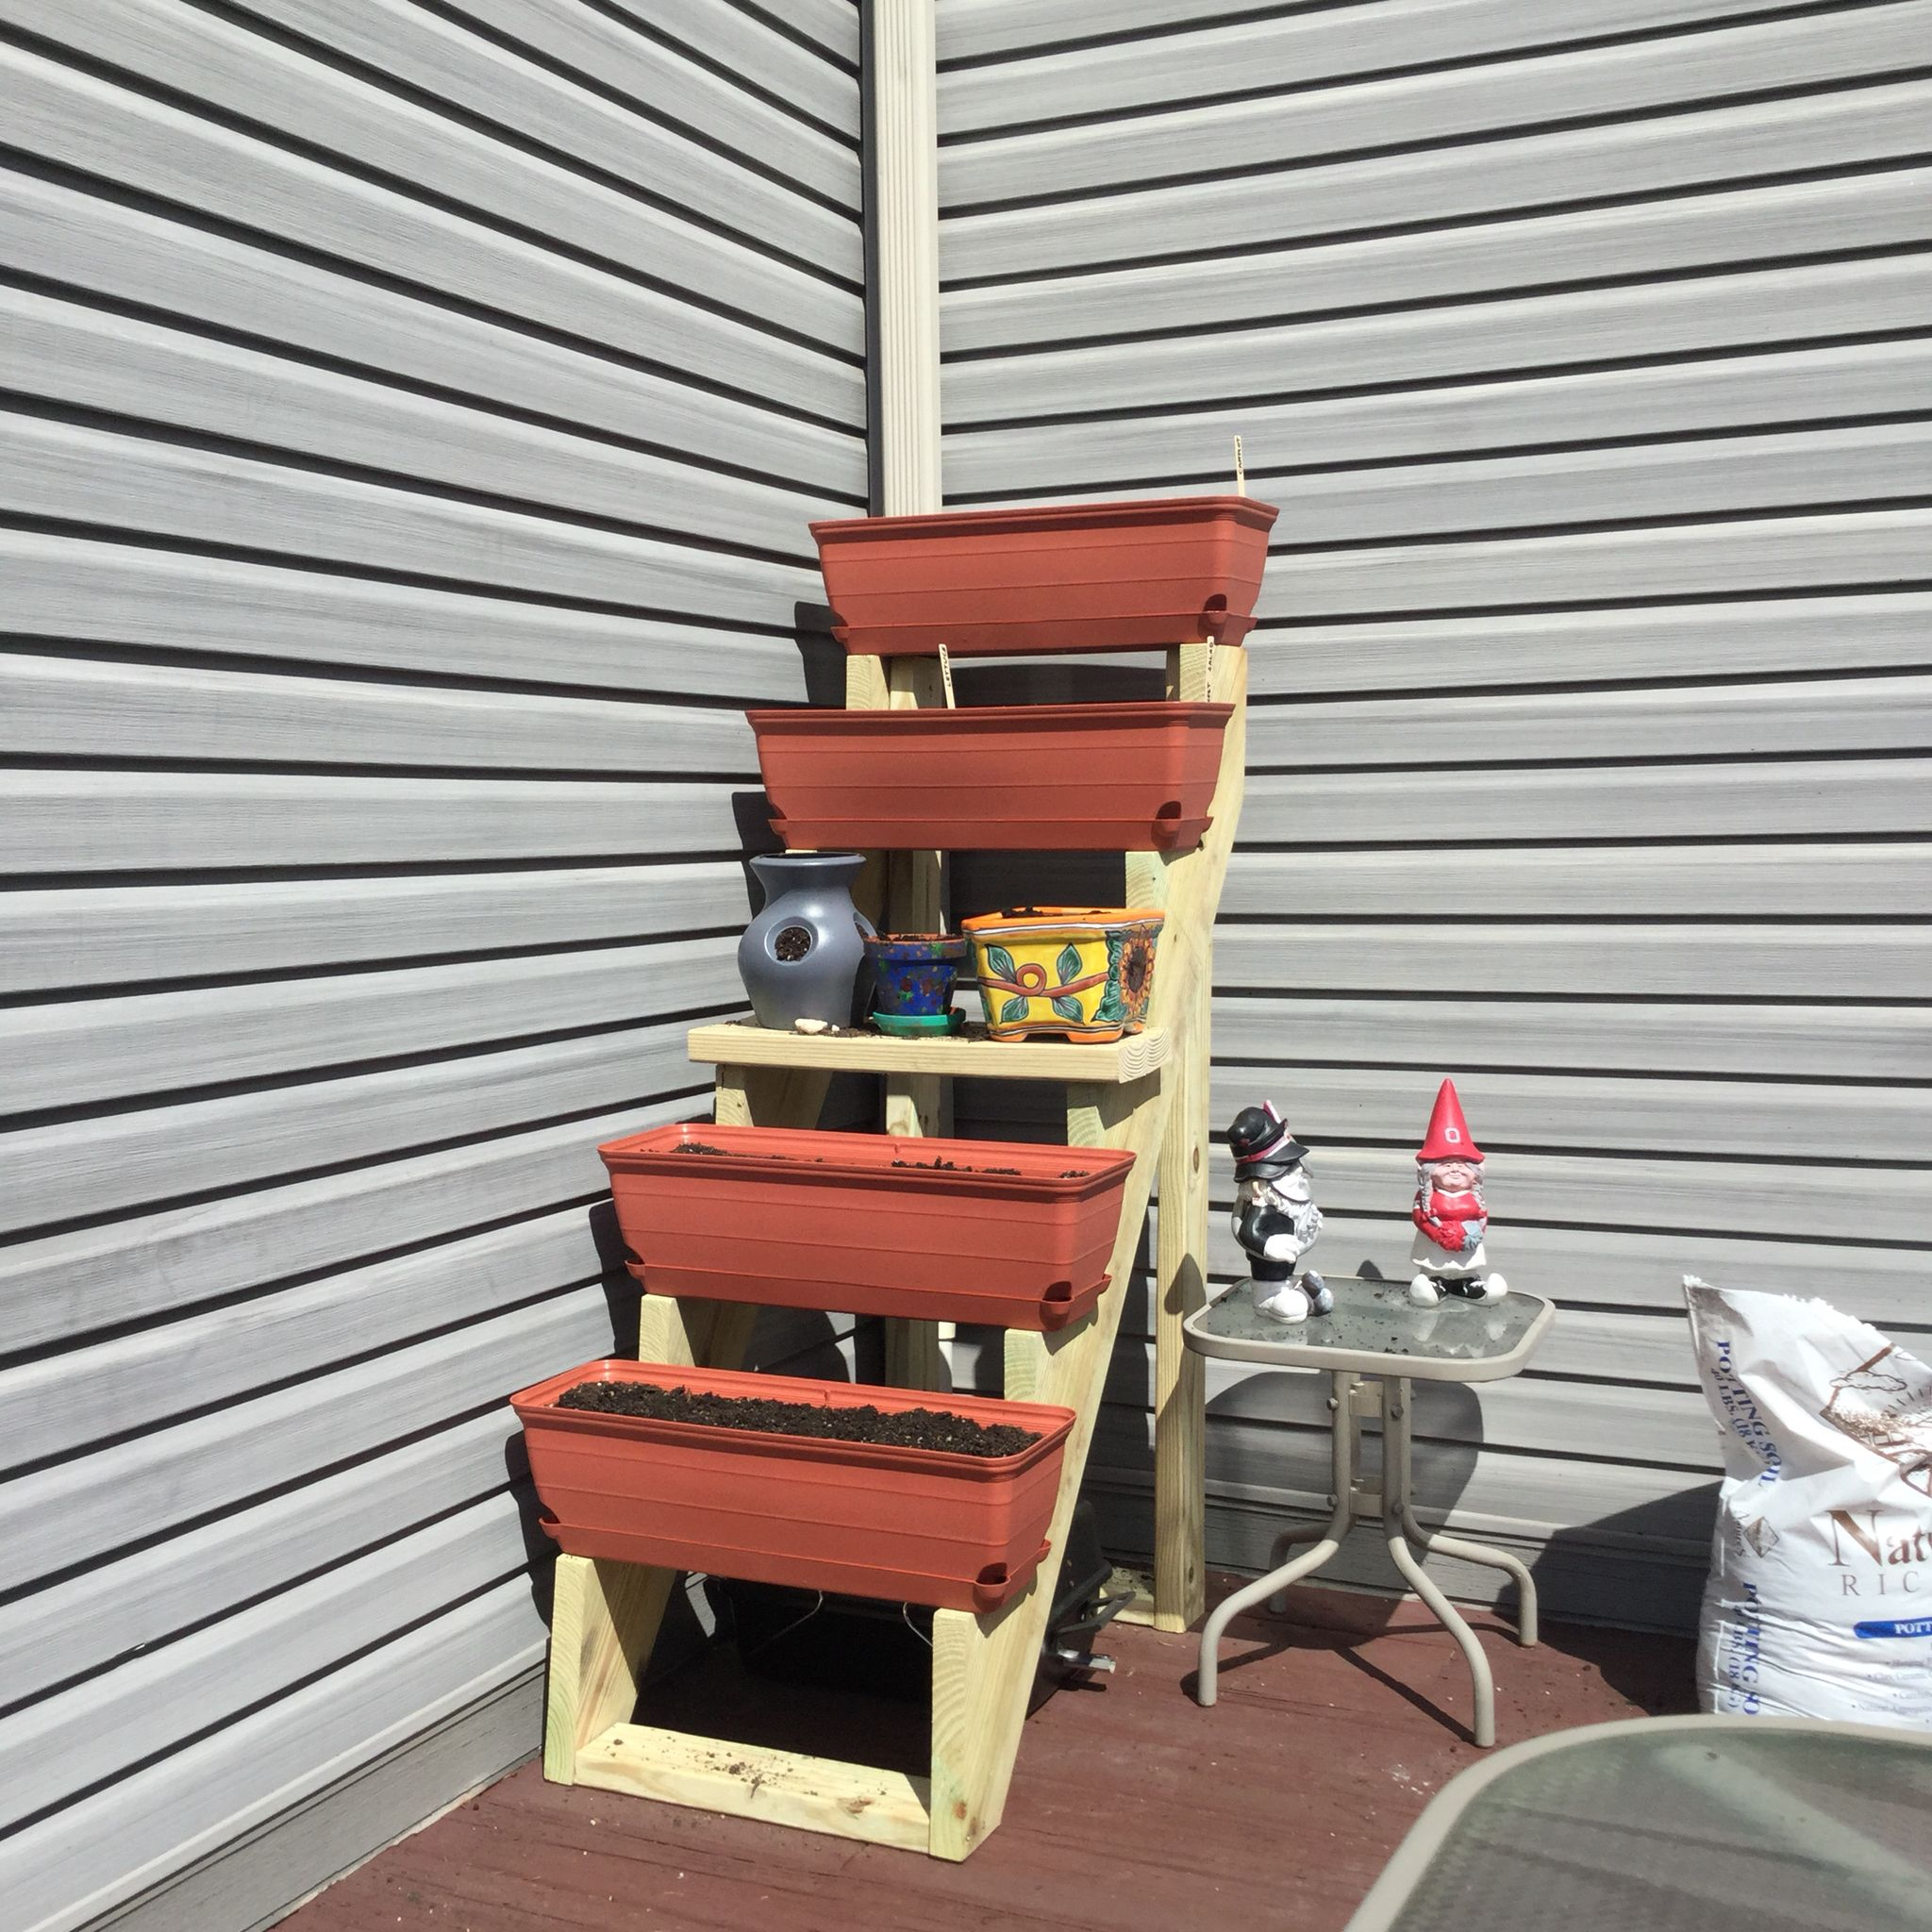 We Built This With Premade Stair Stringers From Home Depot   Premade Stairs For Outdoors